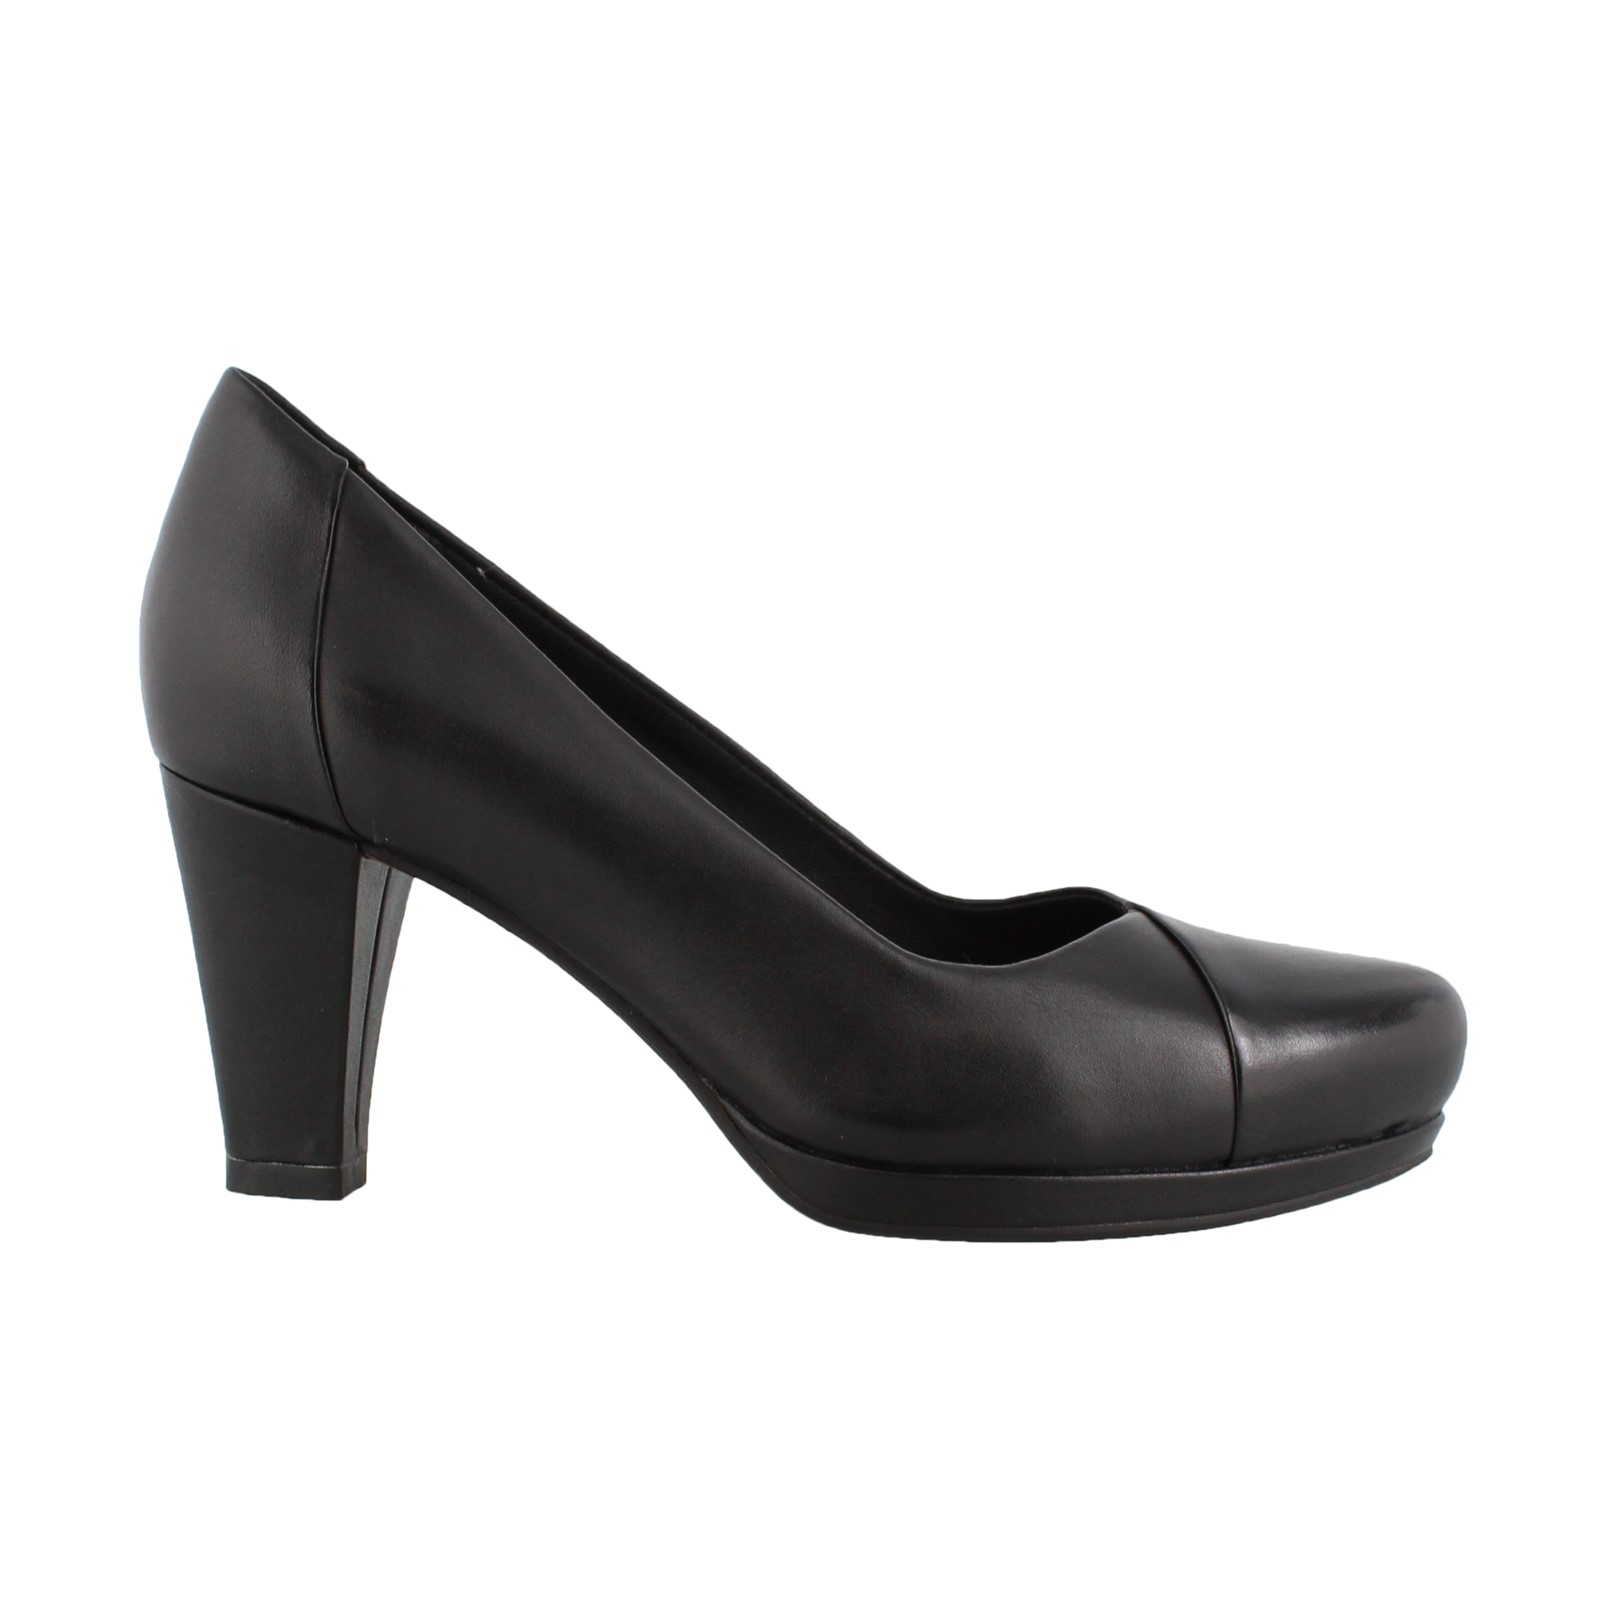 Women's Clarks, Chorus Carol High Heel Pumps